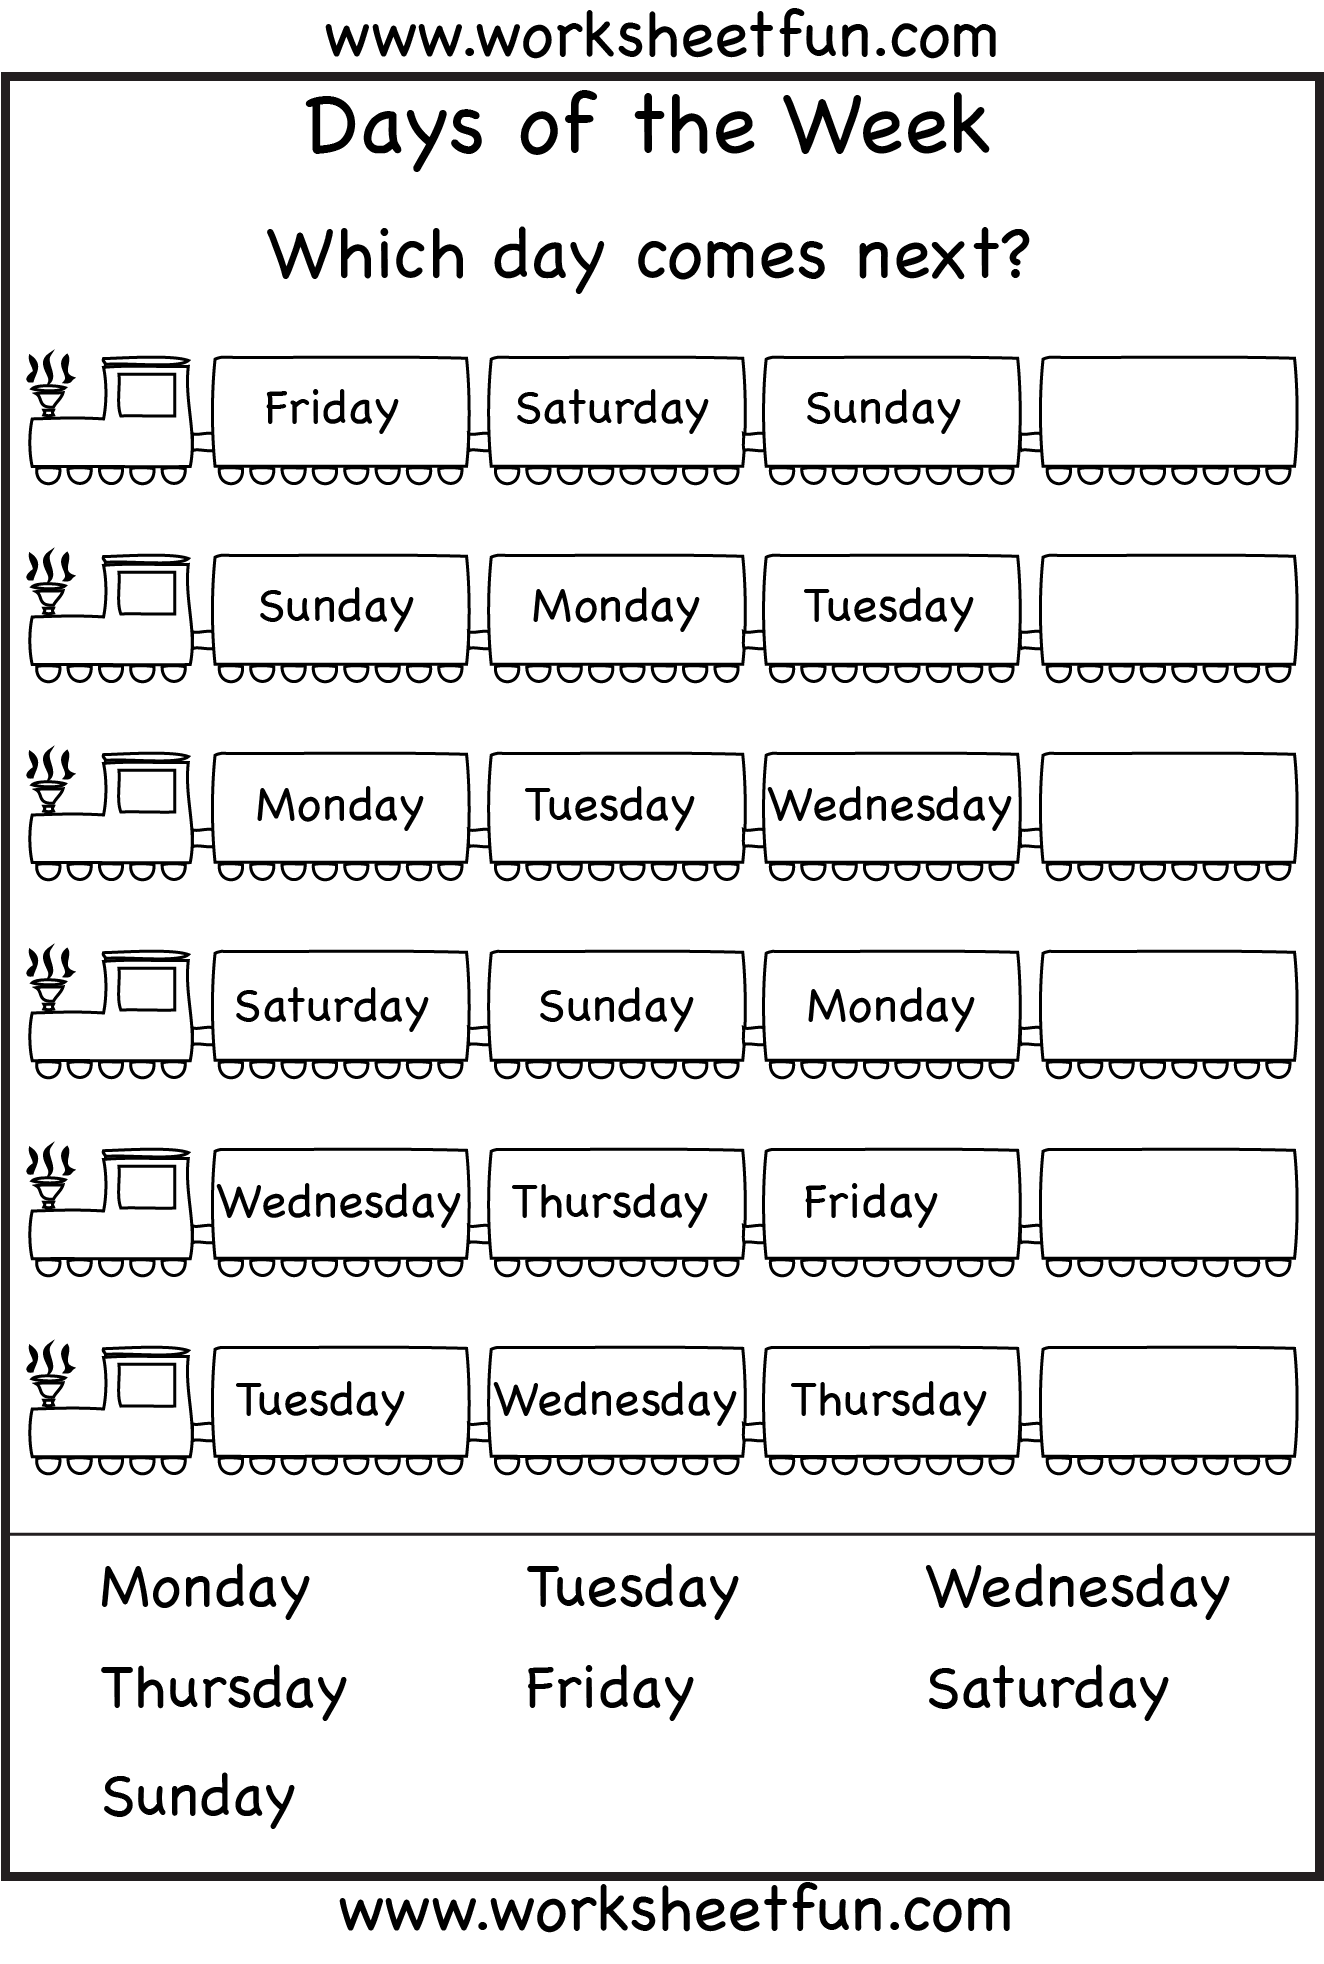 Days of the Week Worksheets 1 Eval